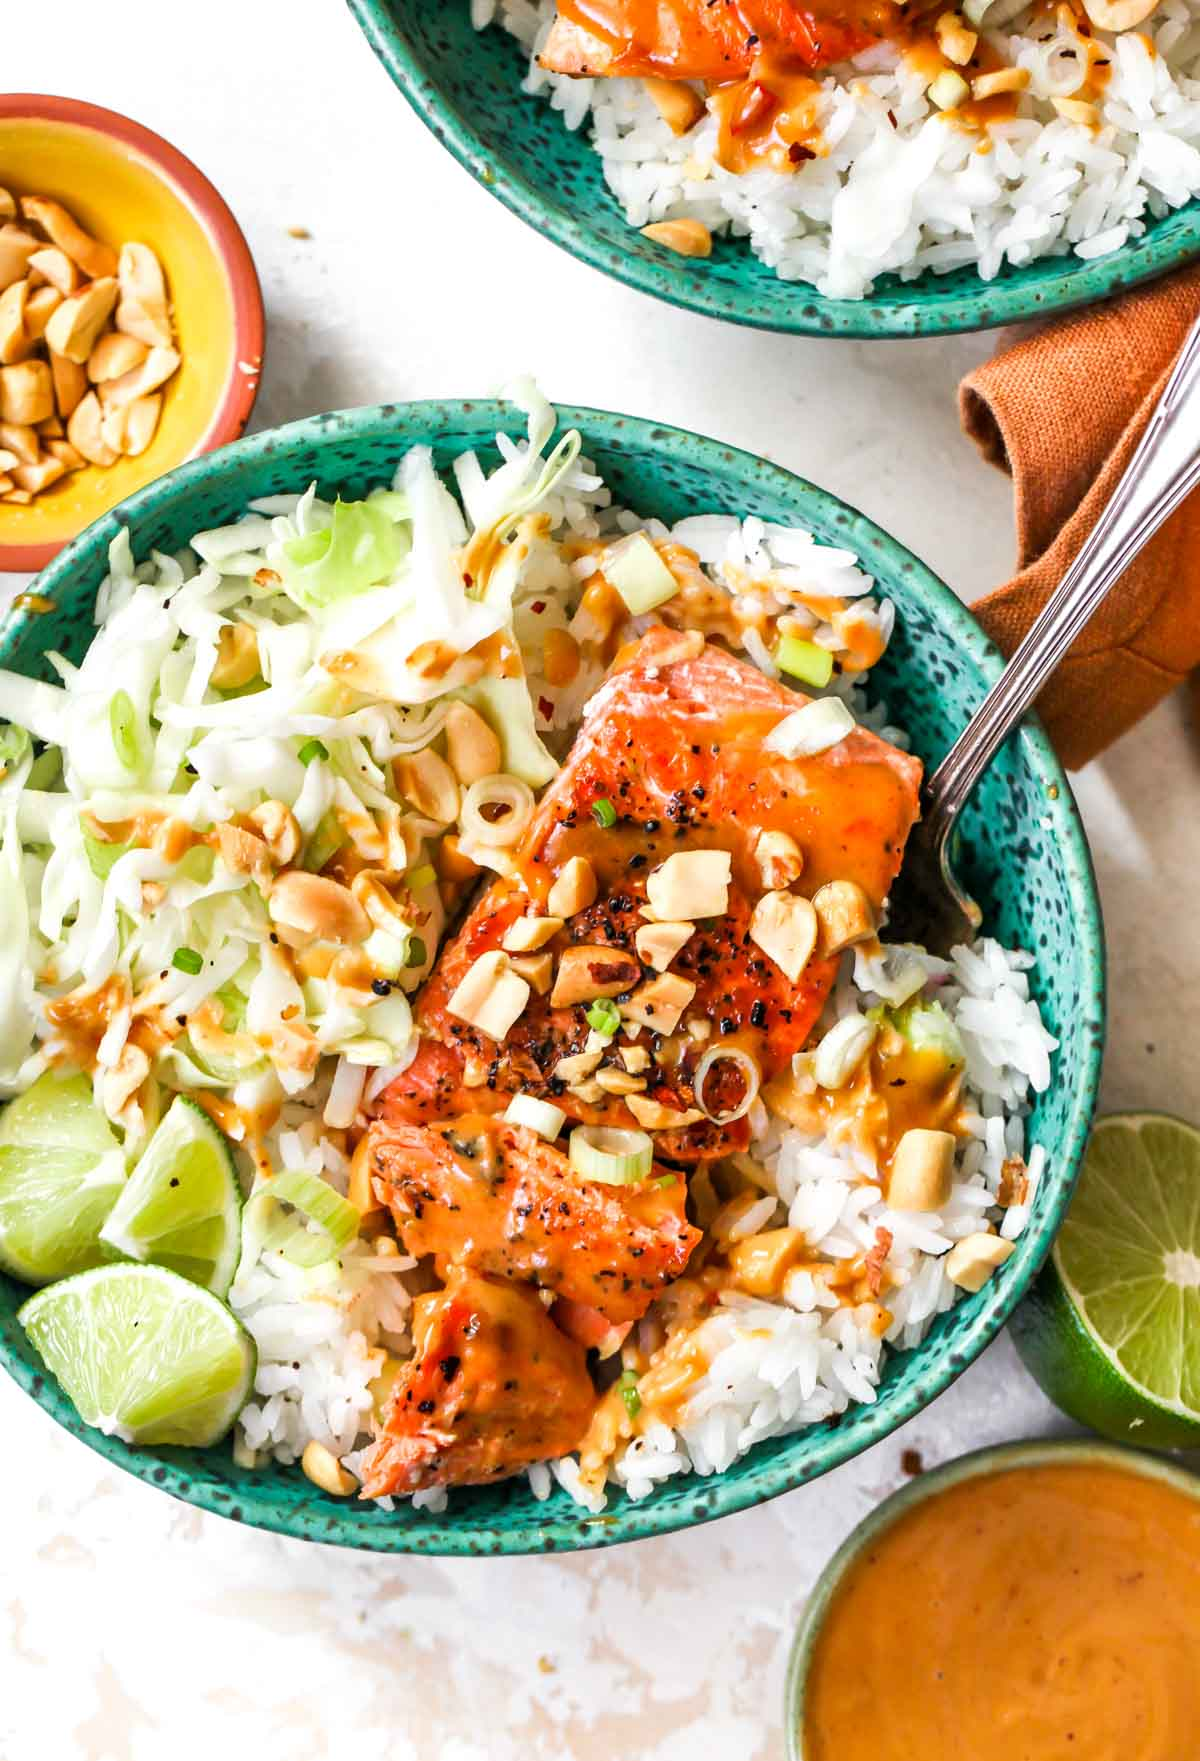 Seared salmon over rice with slaw and peanut sauce in a blue bowl